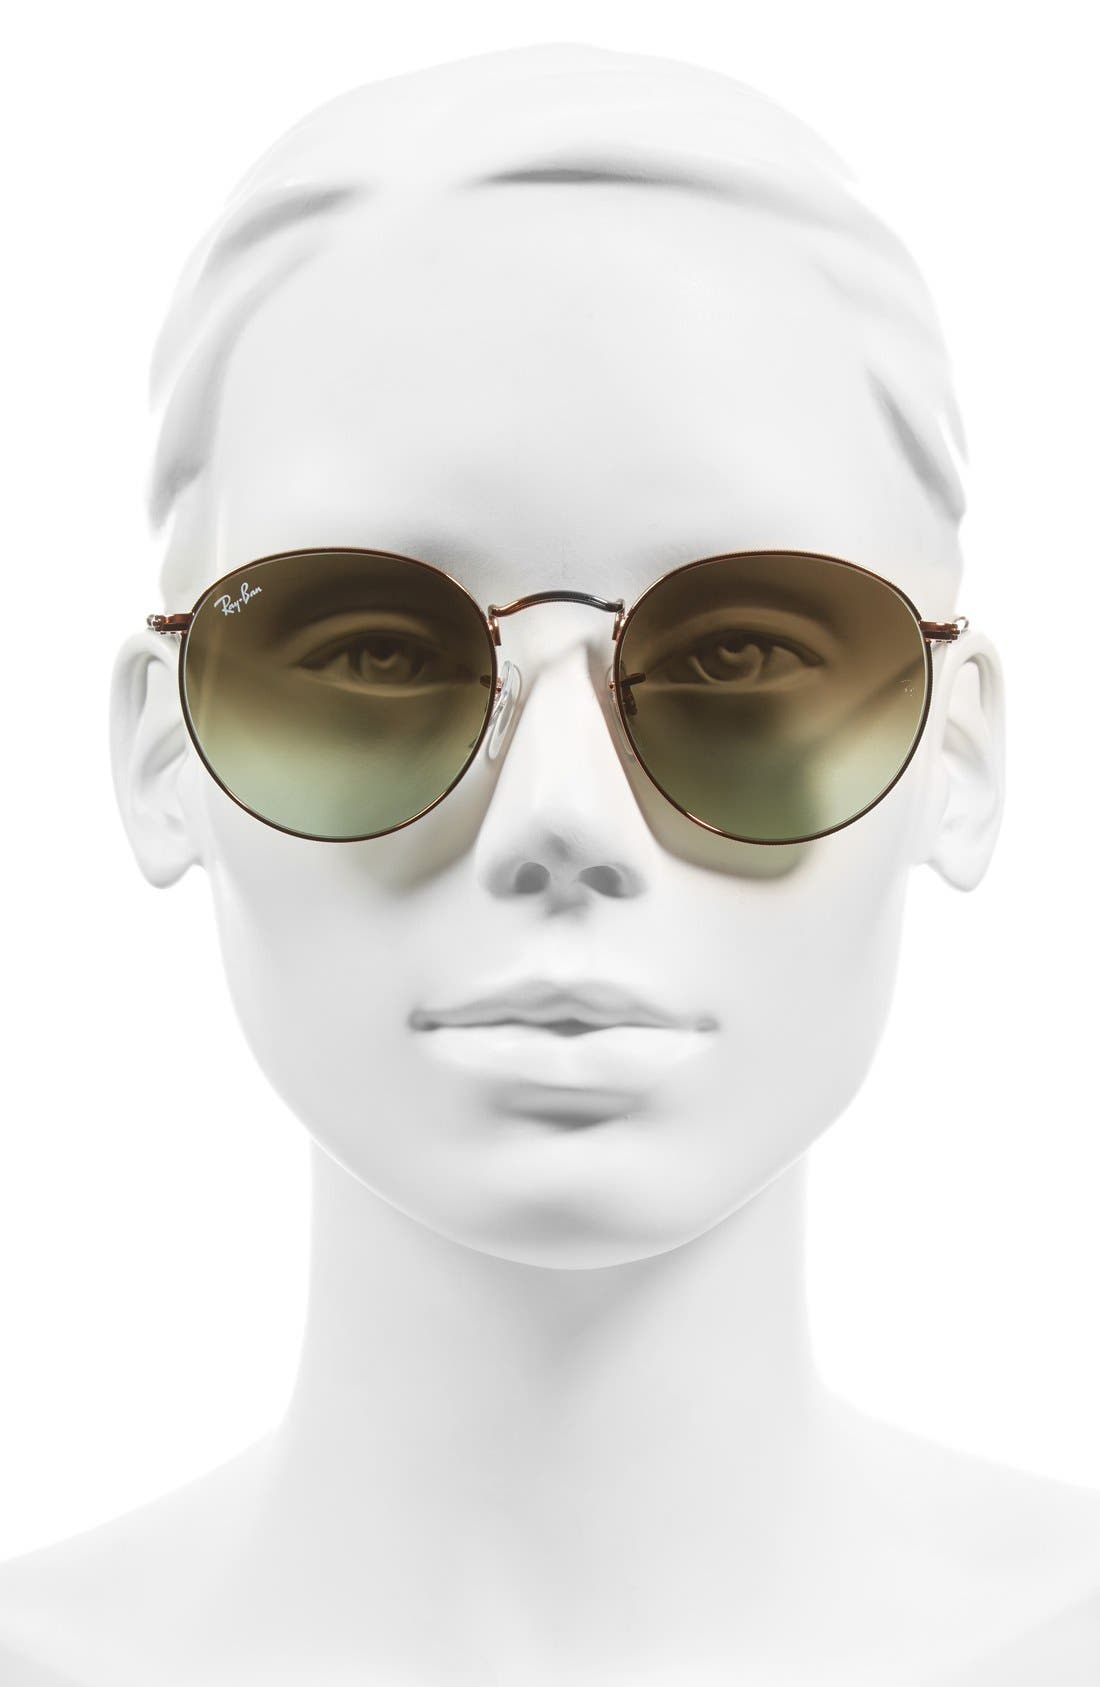 Icons 53mm Retro Sunglasses,                             Alternate thumbnail 2, color,                             GREEN/ BROWN